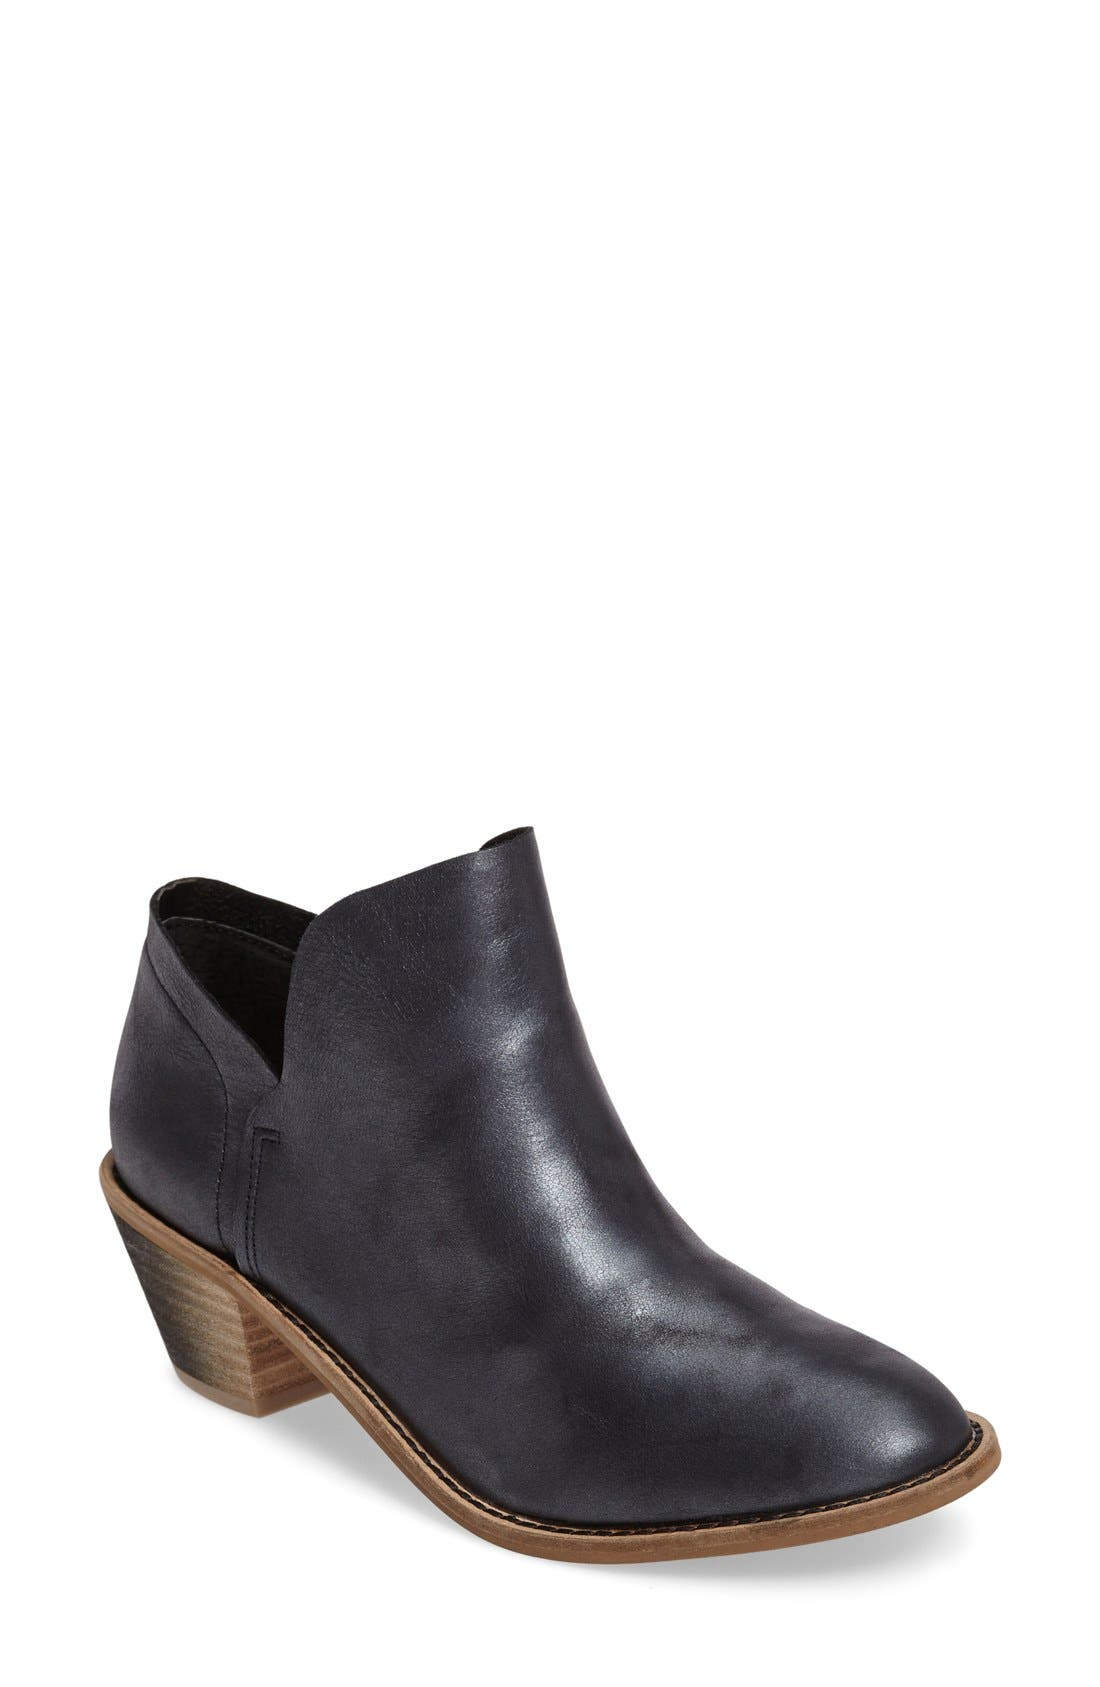 Kenmare Bootie,                             Main thumbnail 1, color,                             Black Leather